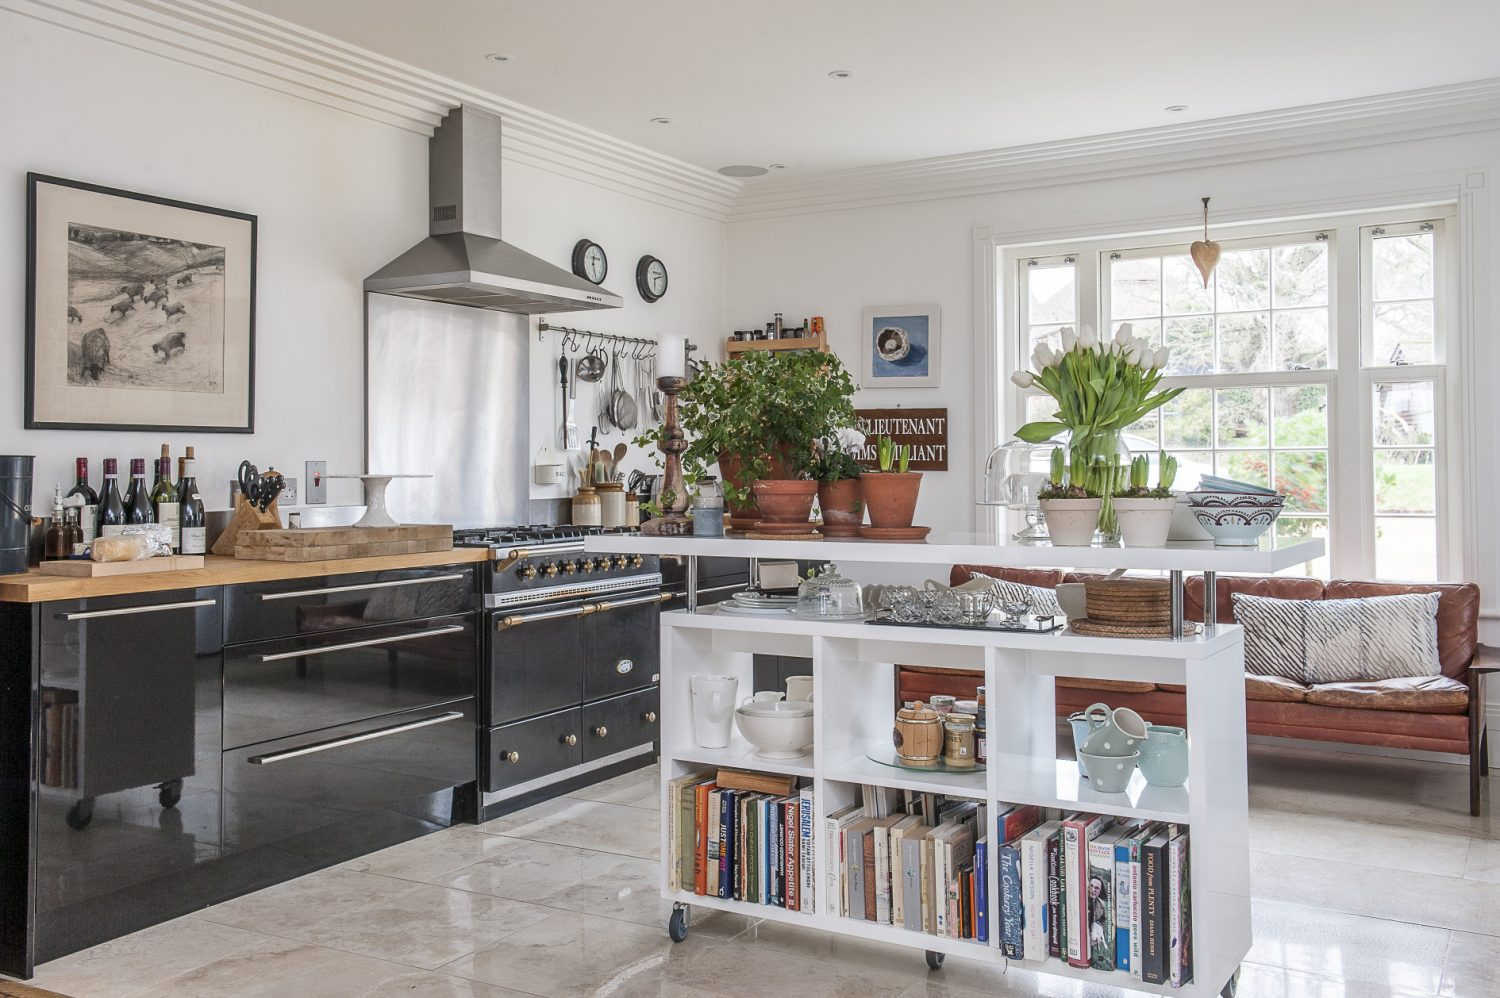 The marble floor tiles were the only feature of the kitchen in place when the Smiths bought their home. They added minimalist off-the-shelf kitchen units and a clever, mobile kitchen unit which can be moved to create more space if necessary